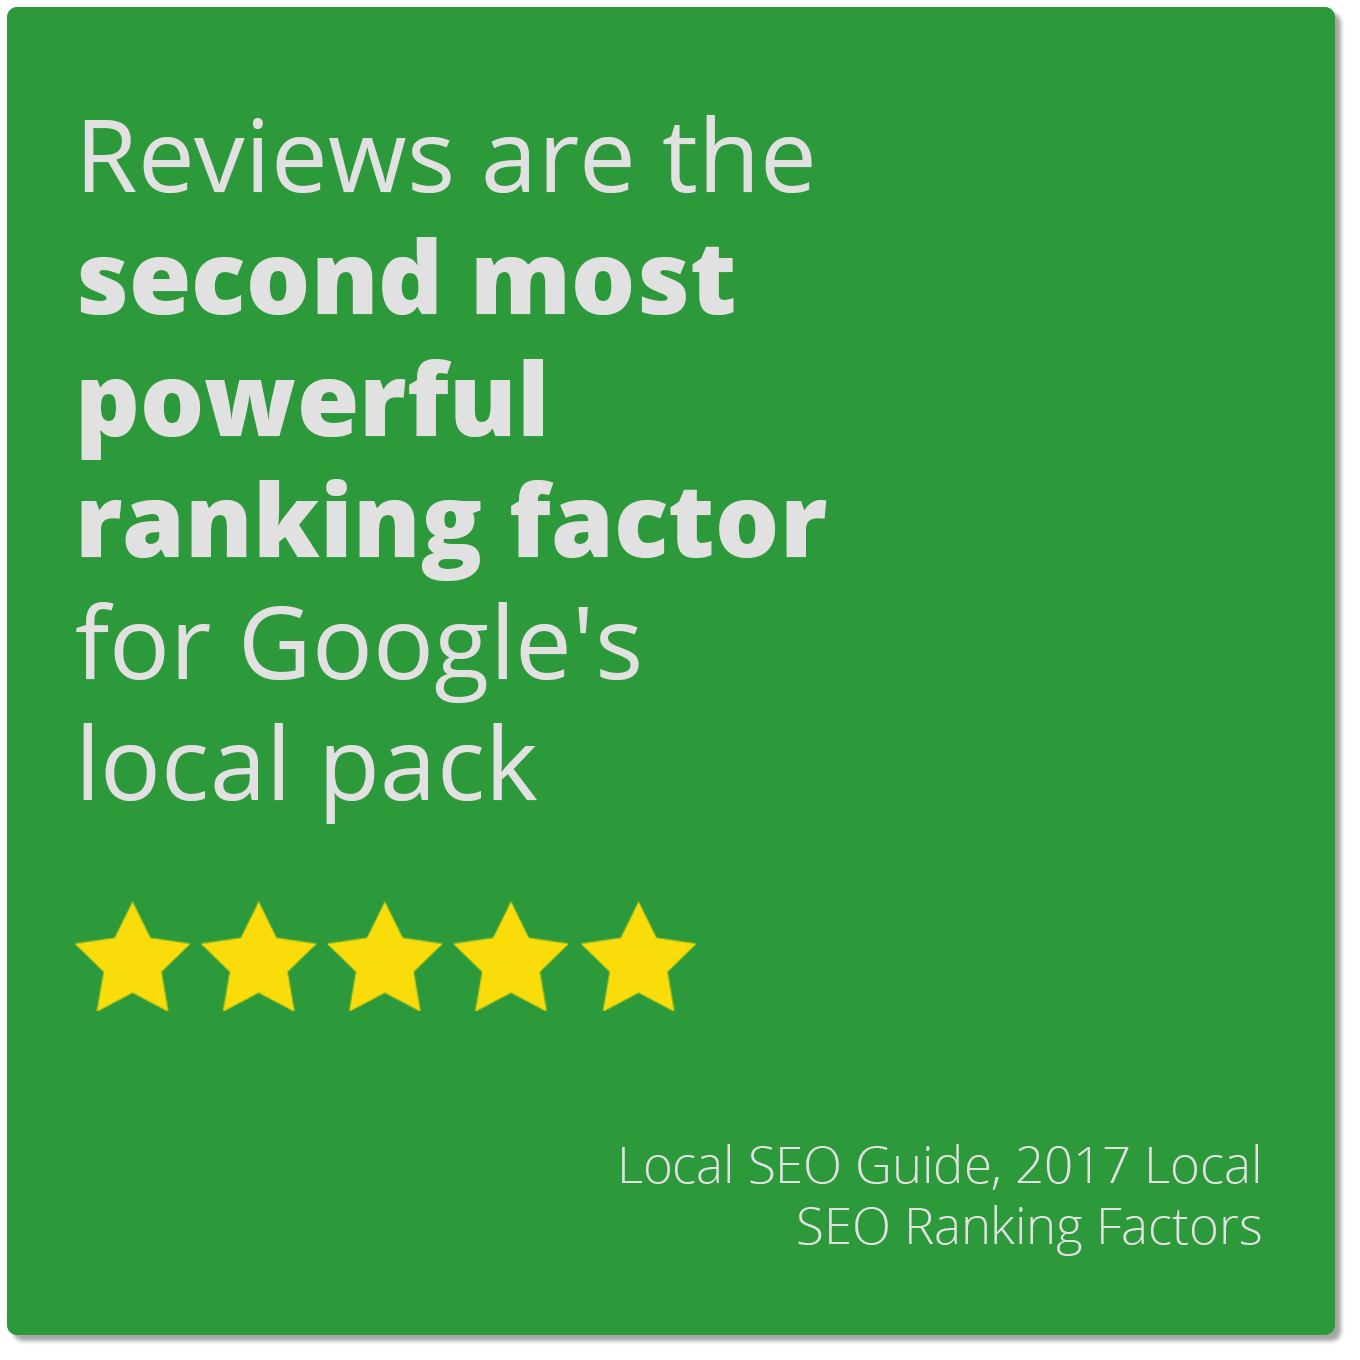 Reviews are the second most powerful ranking factor for Google's local pack